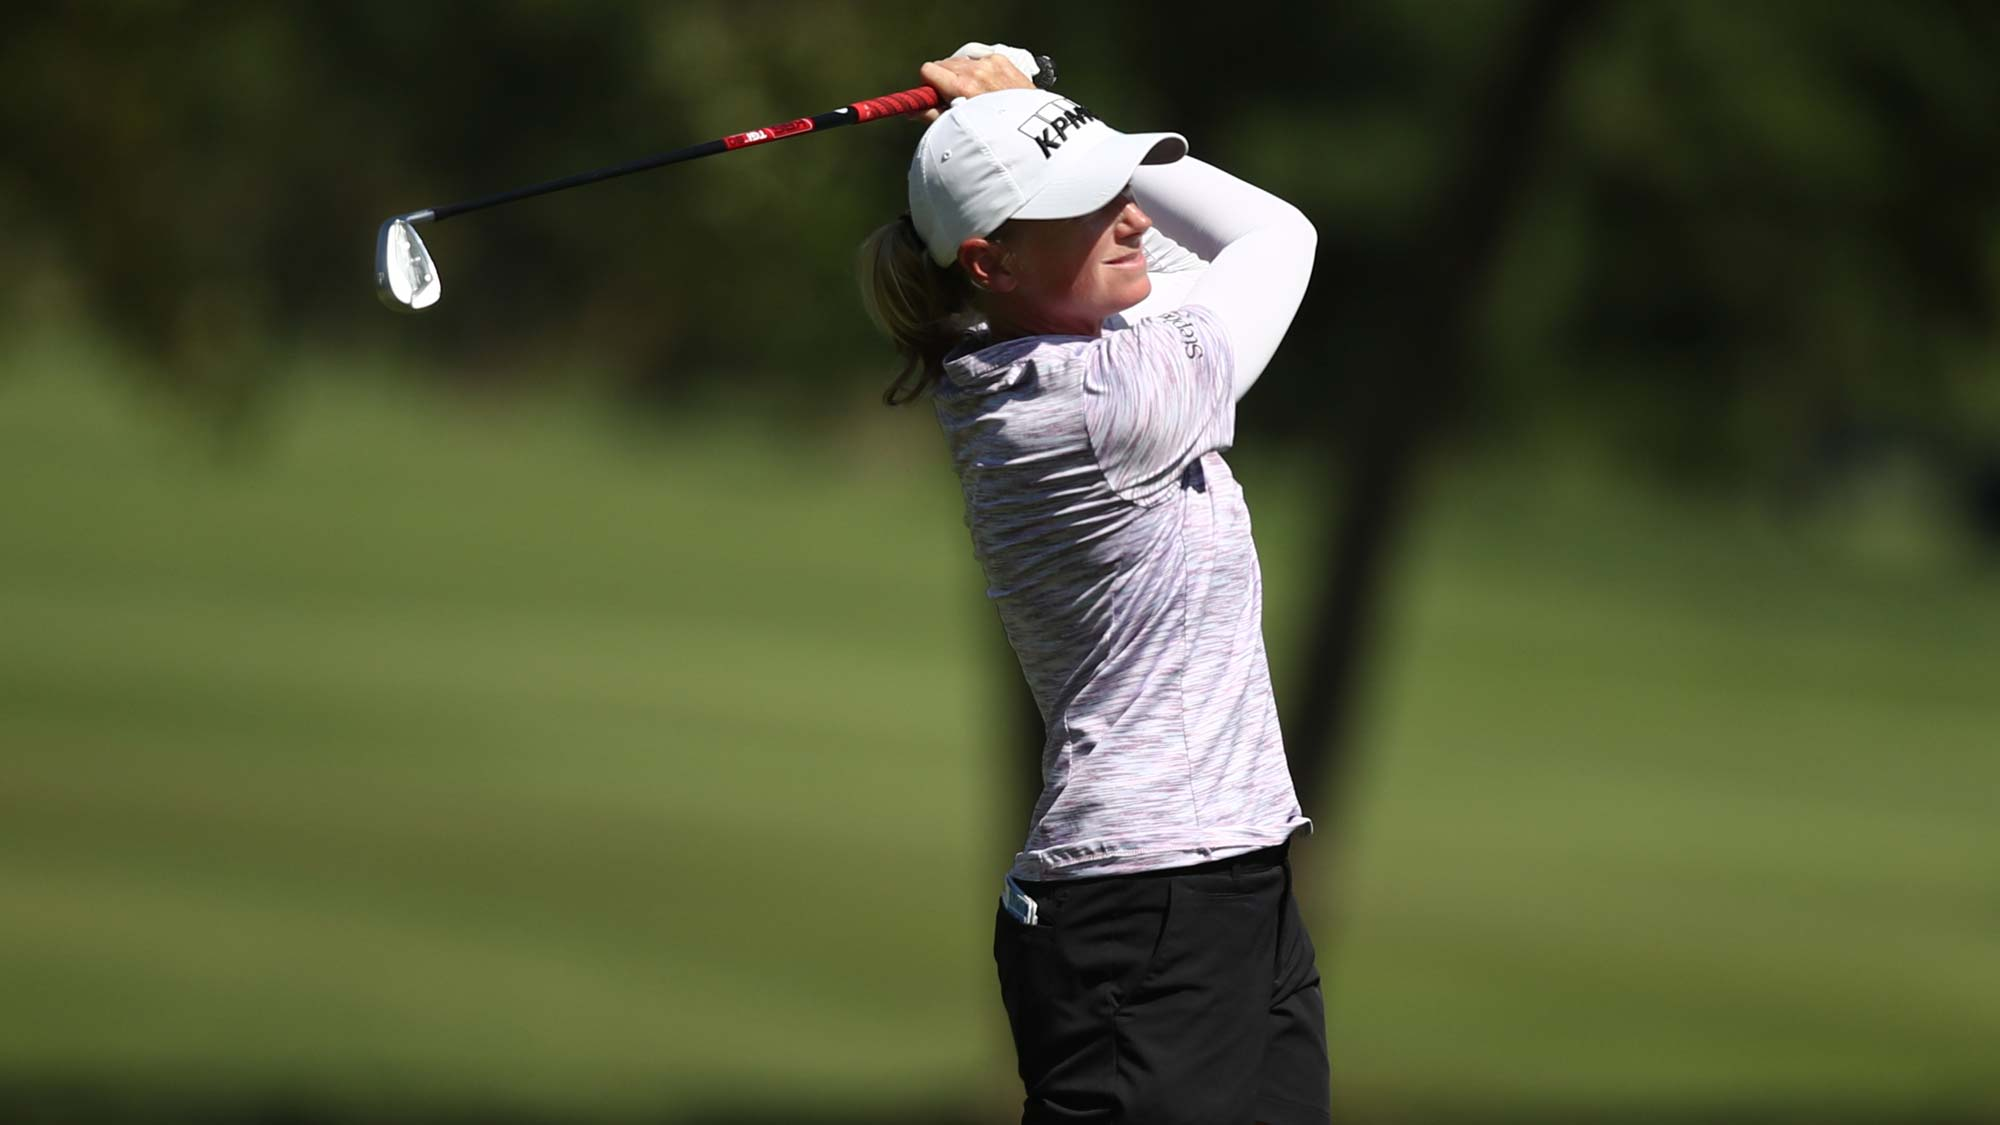 Stacy Lewis plays a shot on the ninth hole during the first round of the LPGA Walmart NW Arkansas Championship